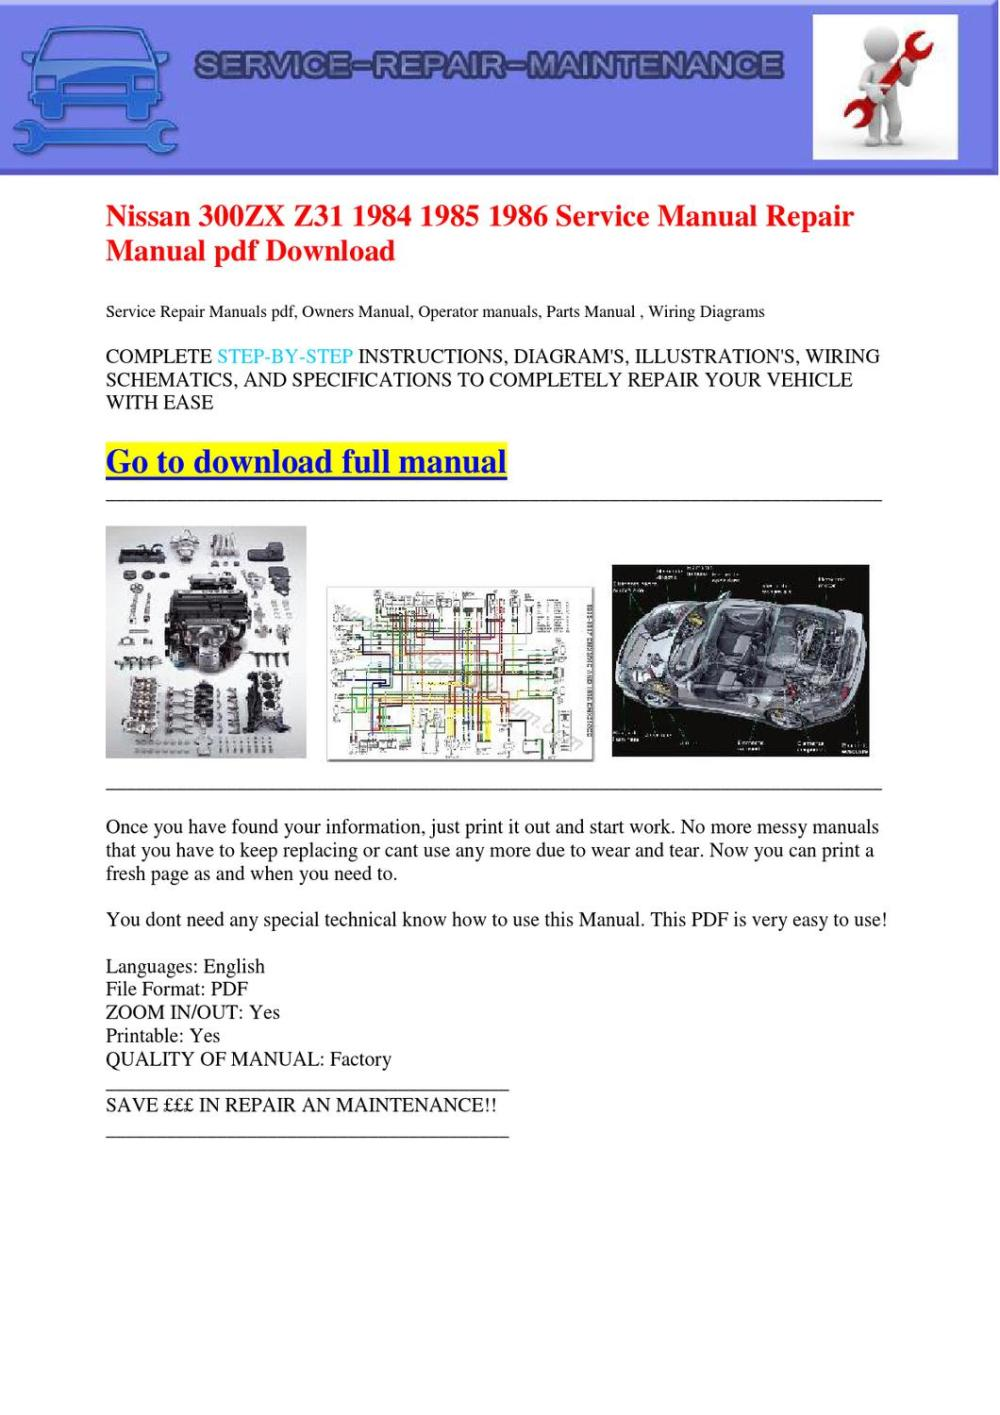 medium resolution of nissan 300zx z31 1984 1985 1986 service manual repair manual pdf download by dernis castan